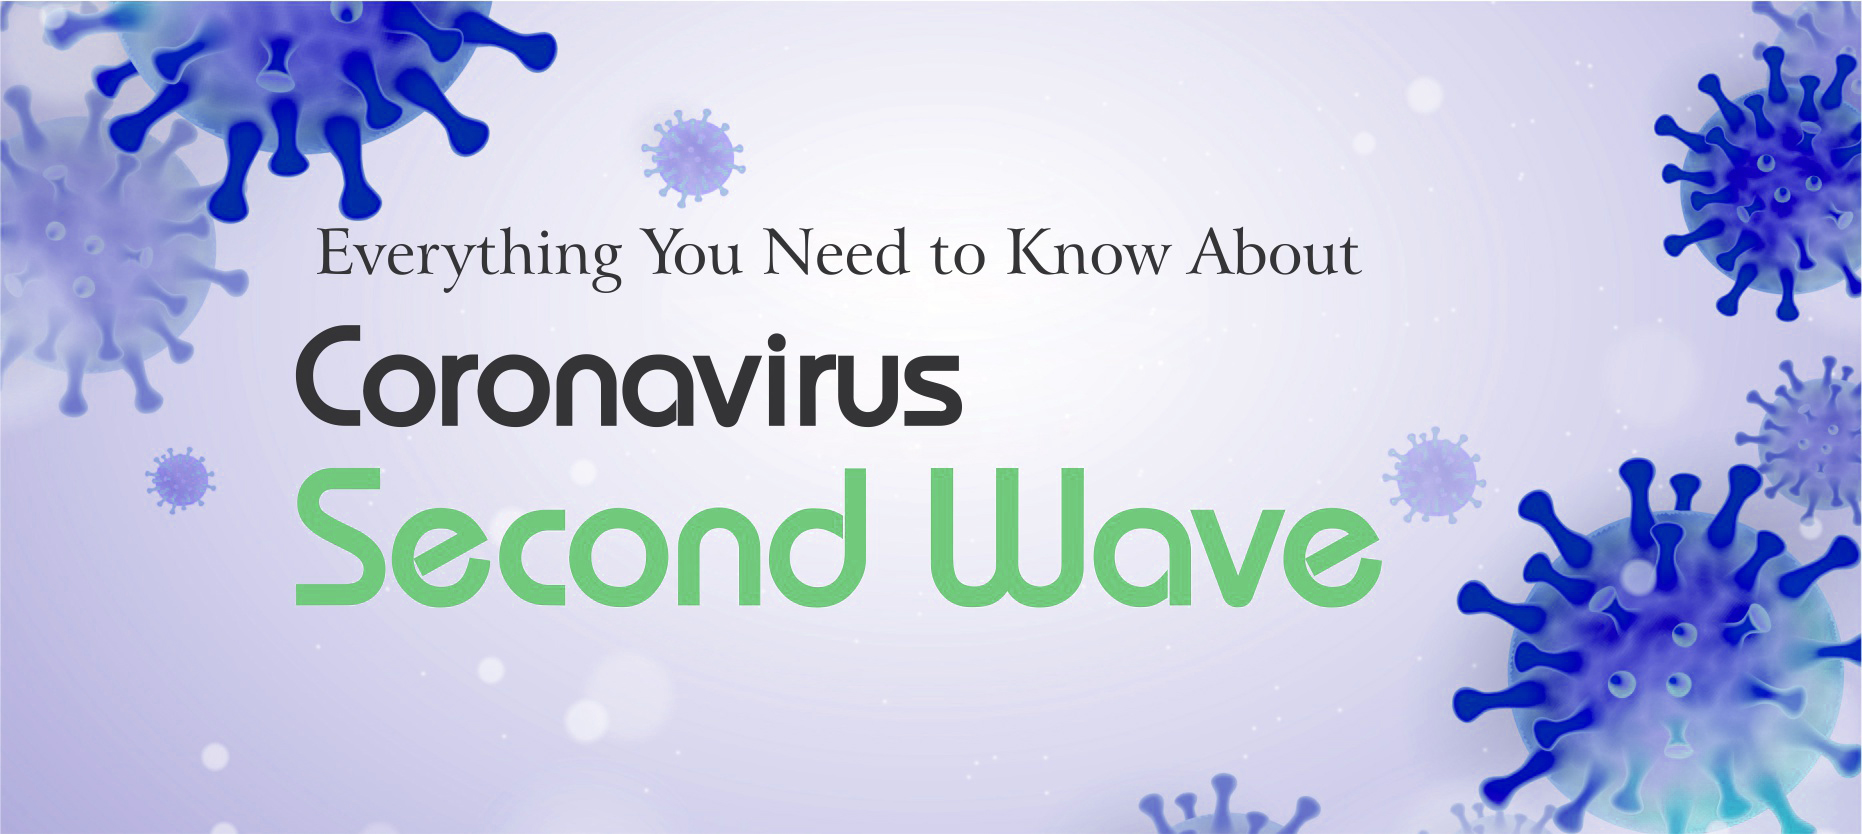 Coronavirus Second Wave: Symptoms To Watch Out For